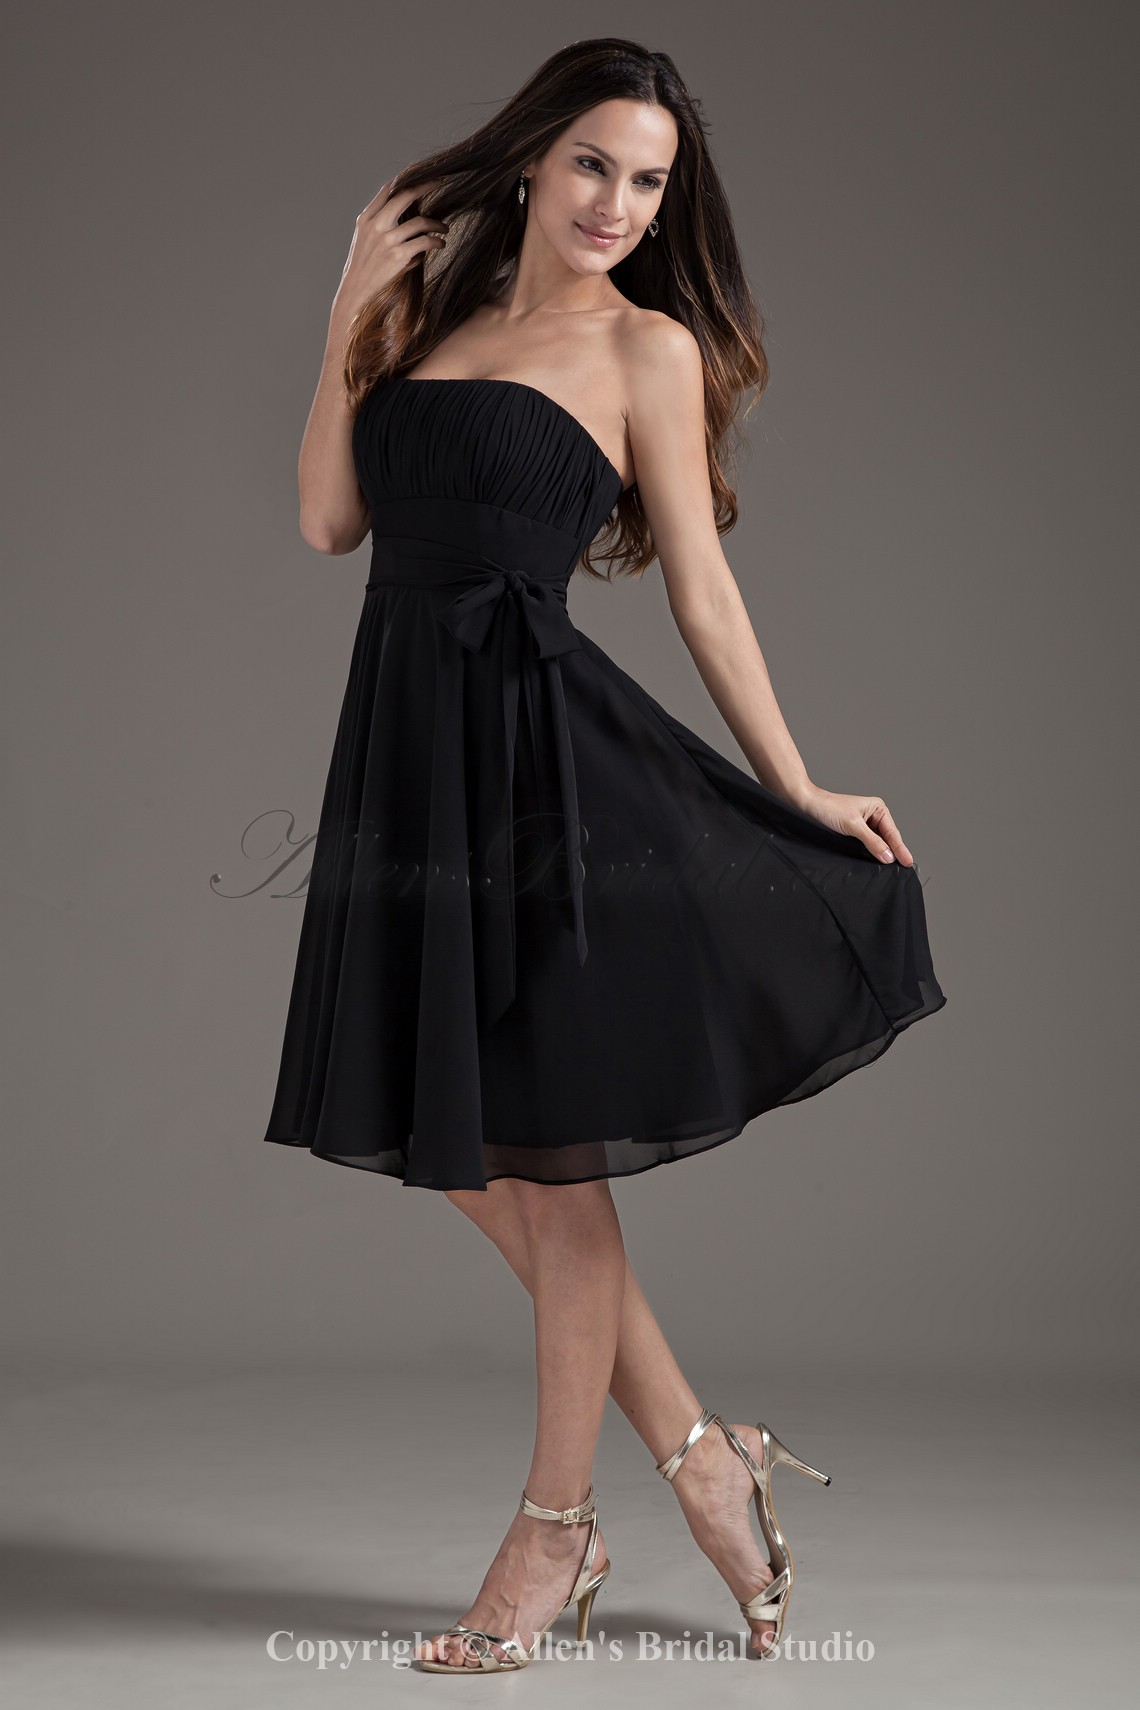 /124-987/chiffon-strapless-a-line-black-knee-length-sash-cocktail-dress.jpg